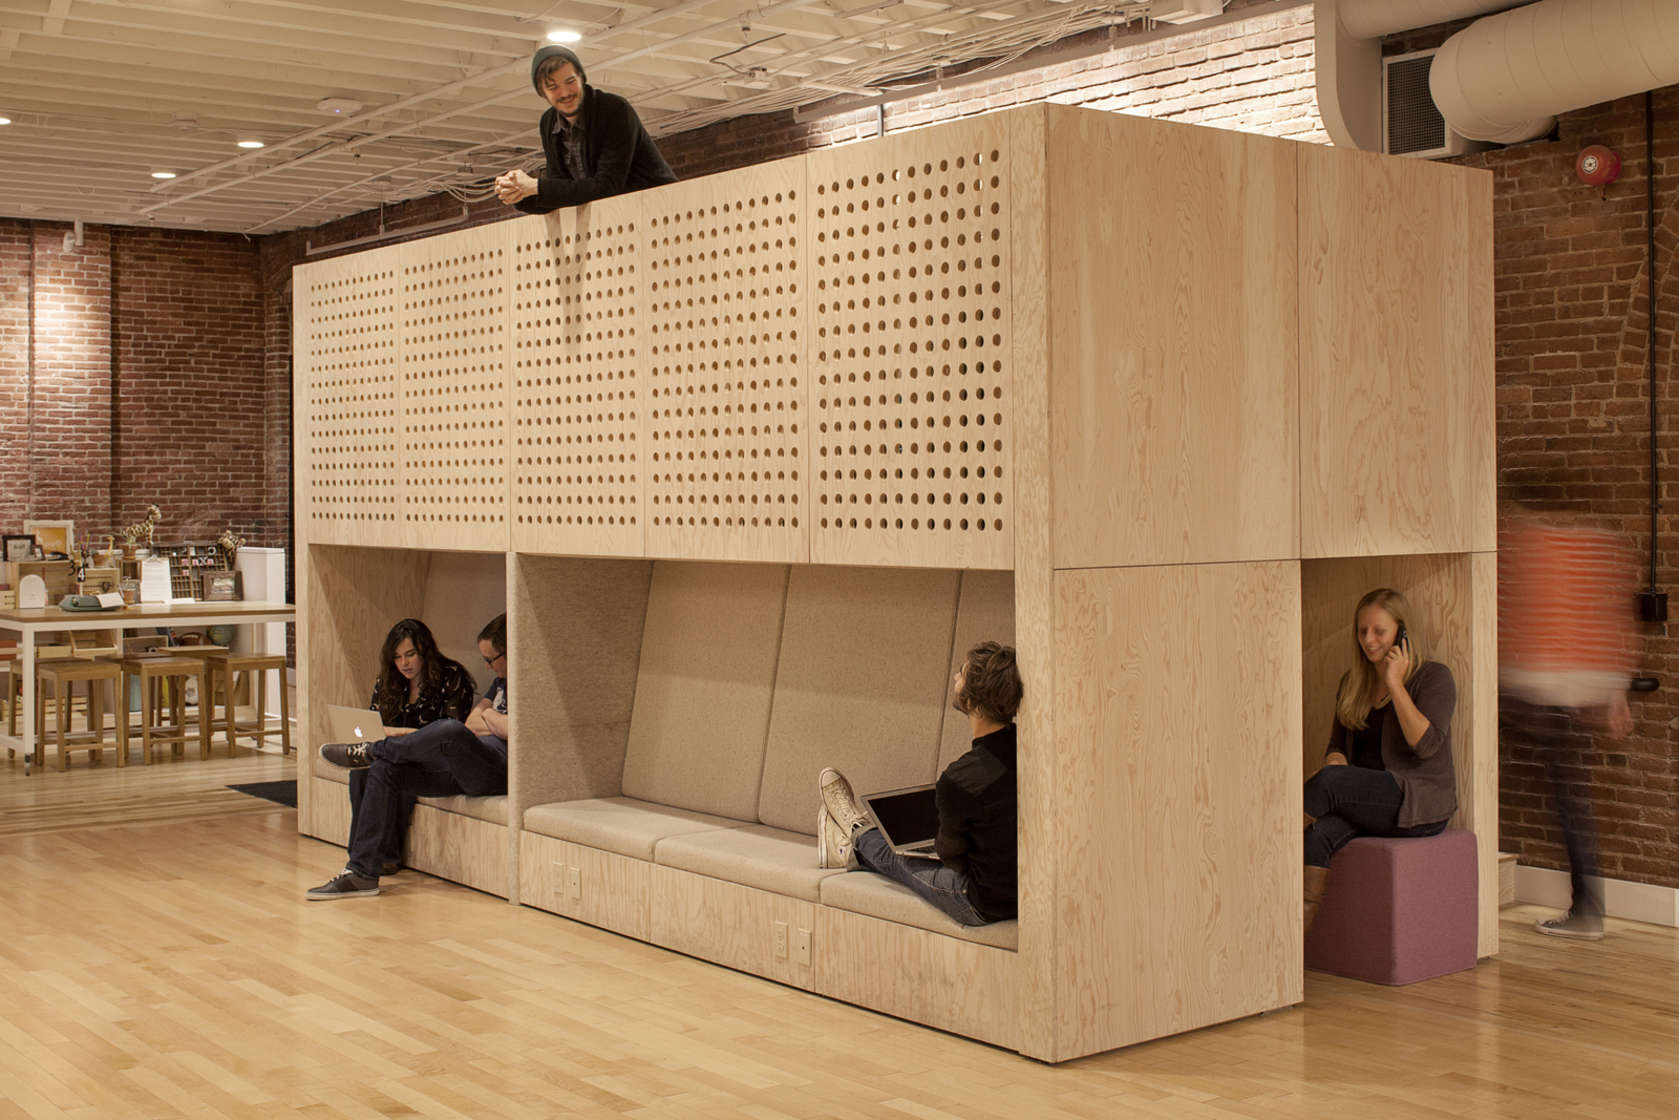 out of office workplace innovation in the age of the sharing economy architizer airbnb office 6 google san